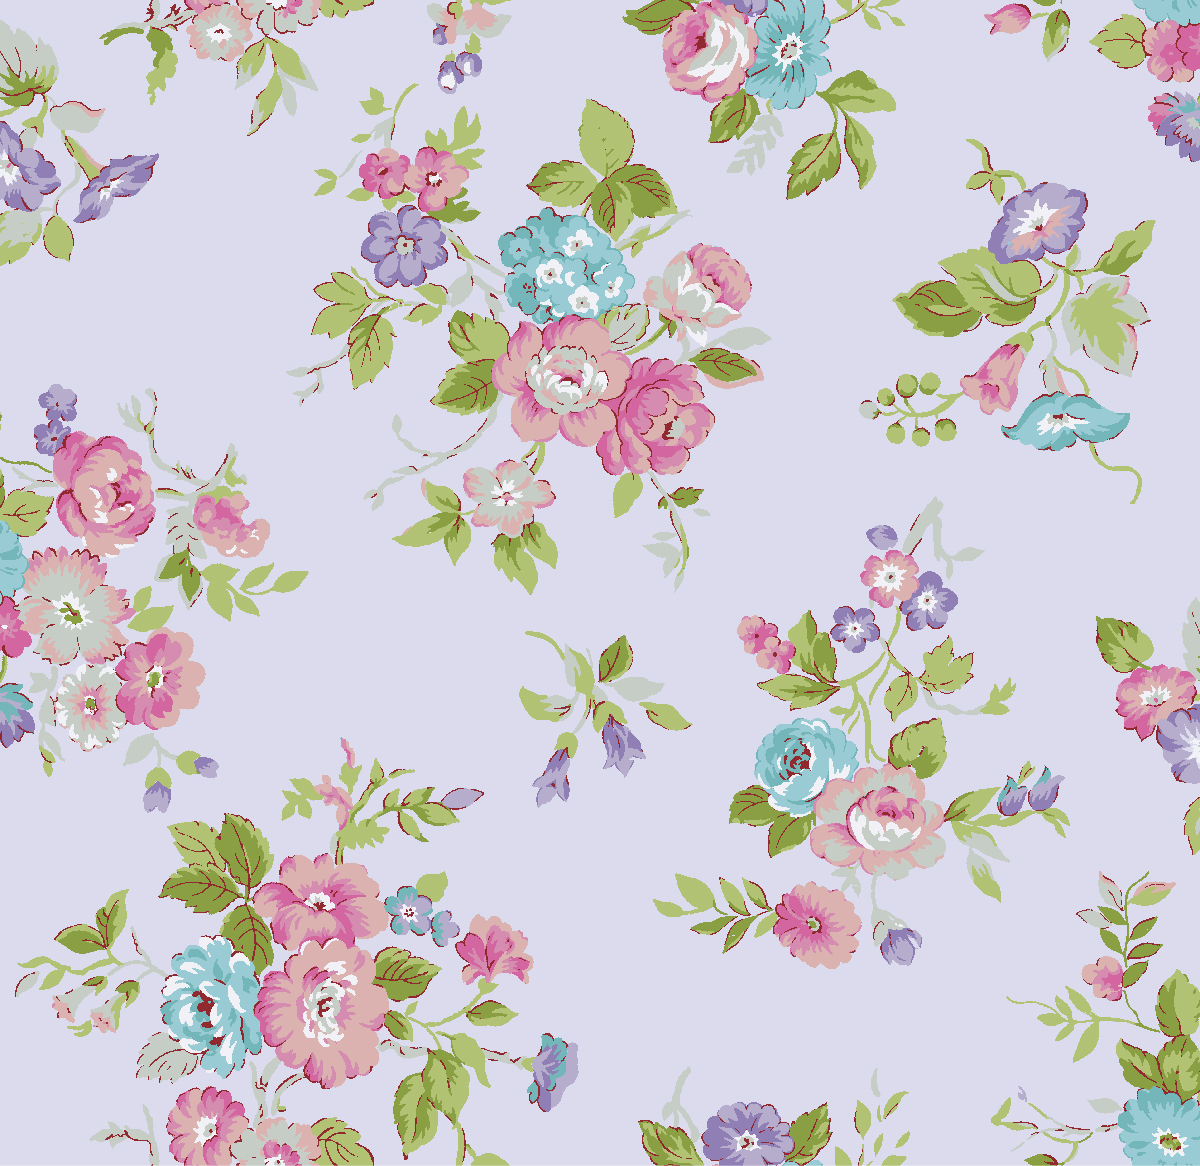 Waverly Inspirations Floral carnation 100% Cotton Print Fabric 44'' Wide, 140 Gsm, Quilt Crafts Cut By The Yard